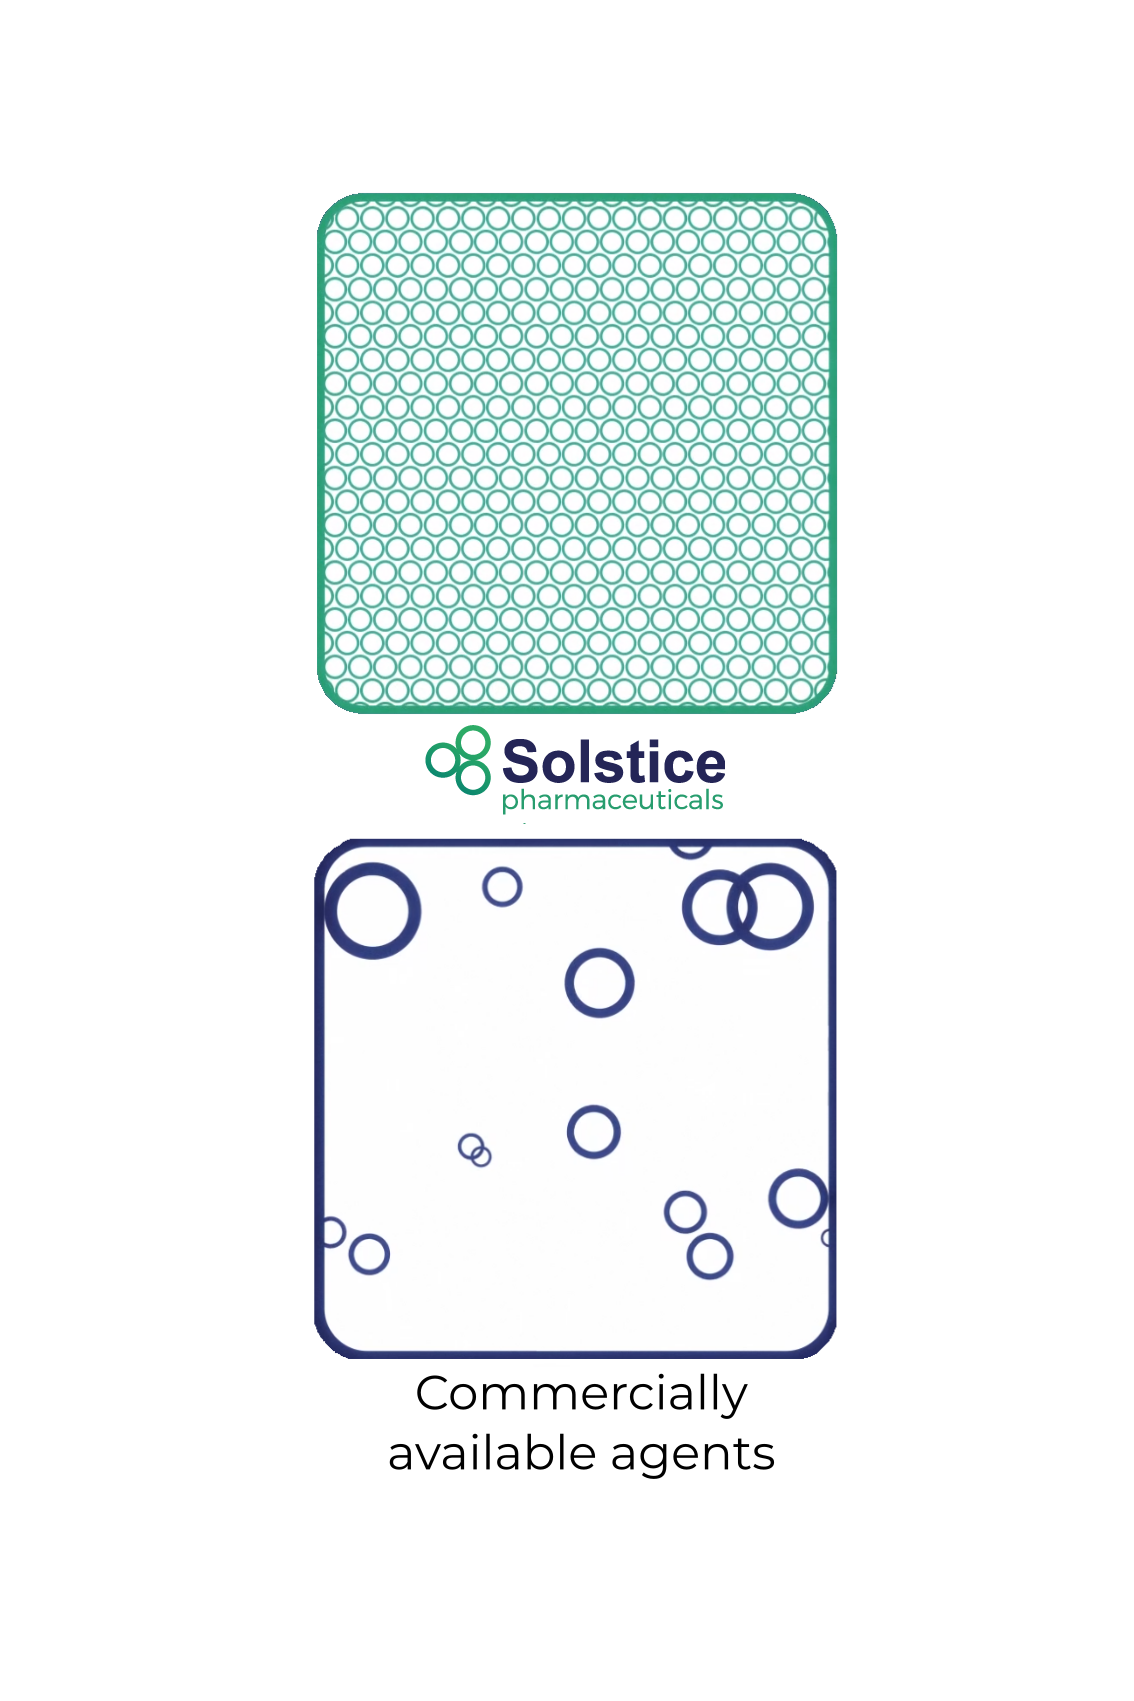 solstice-vs-commercially-available1134x1701